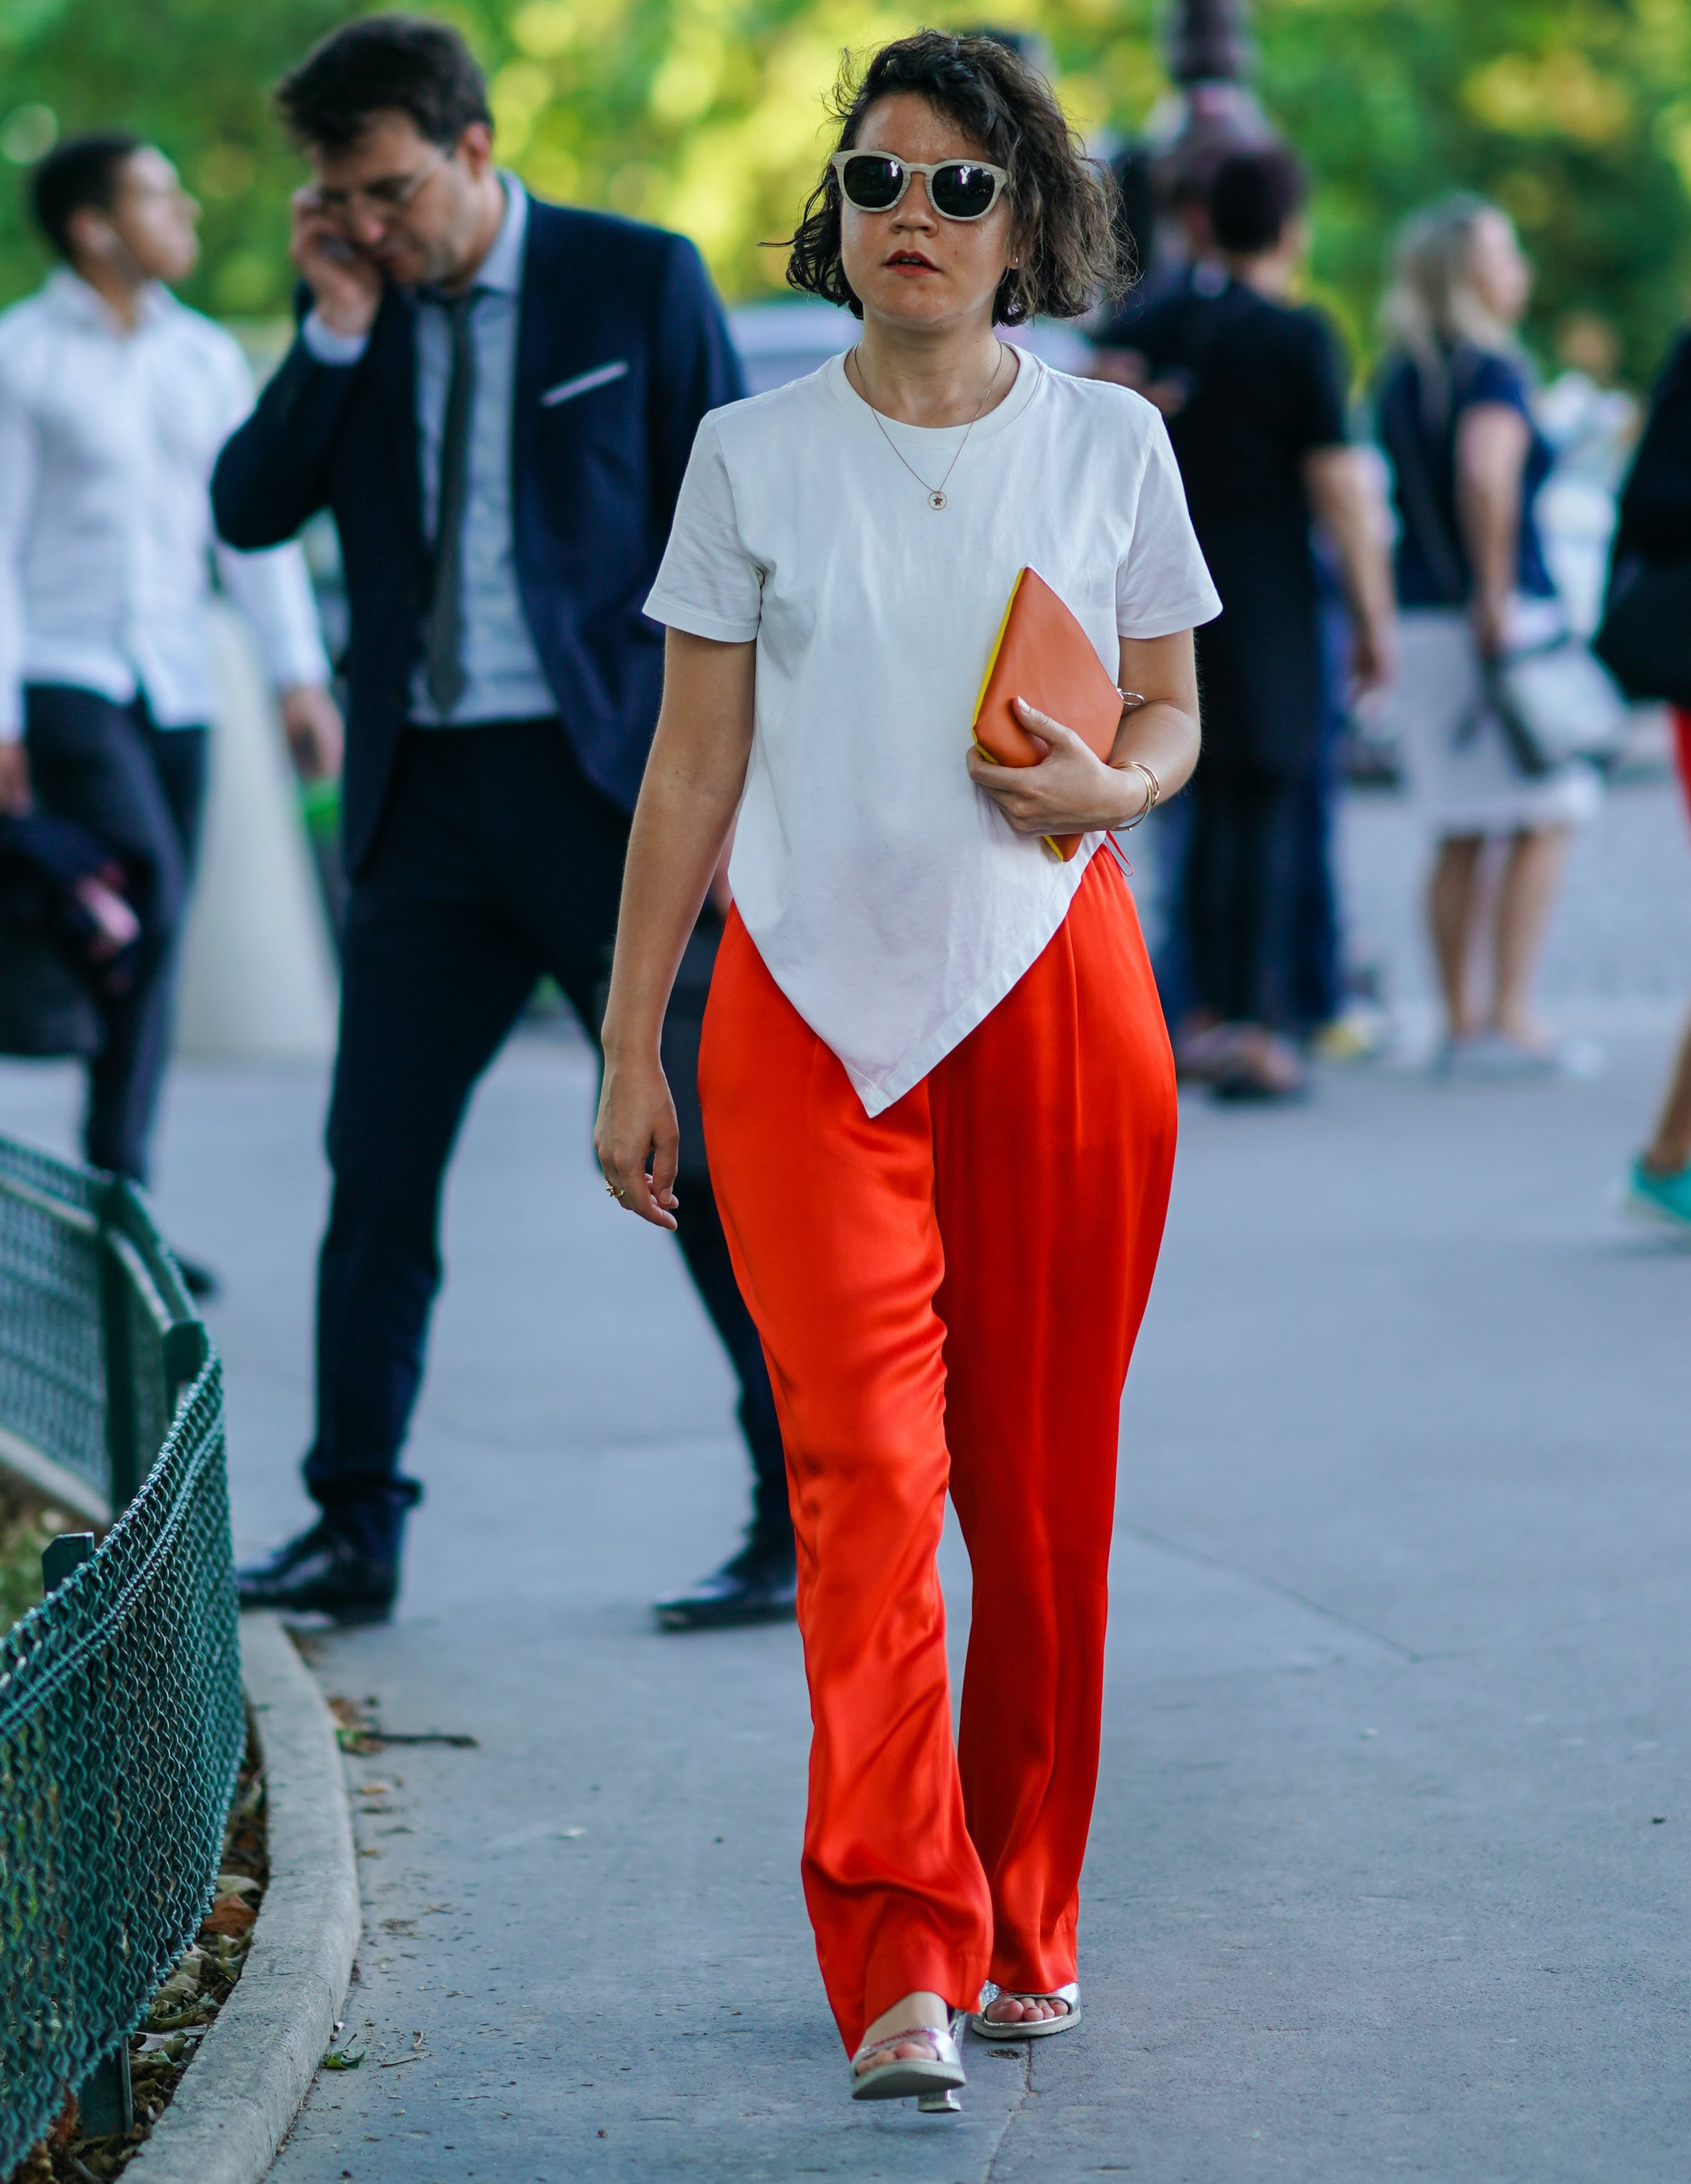 7 Sophisticated but Festive Ways to Dress For July 4th